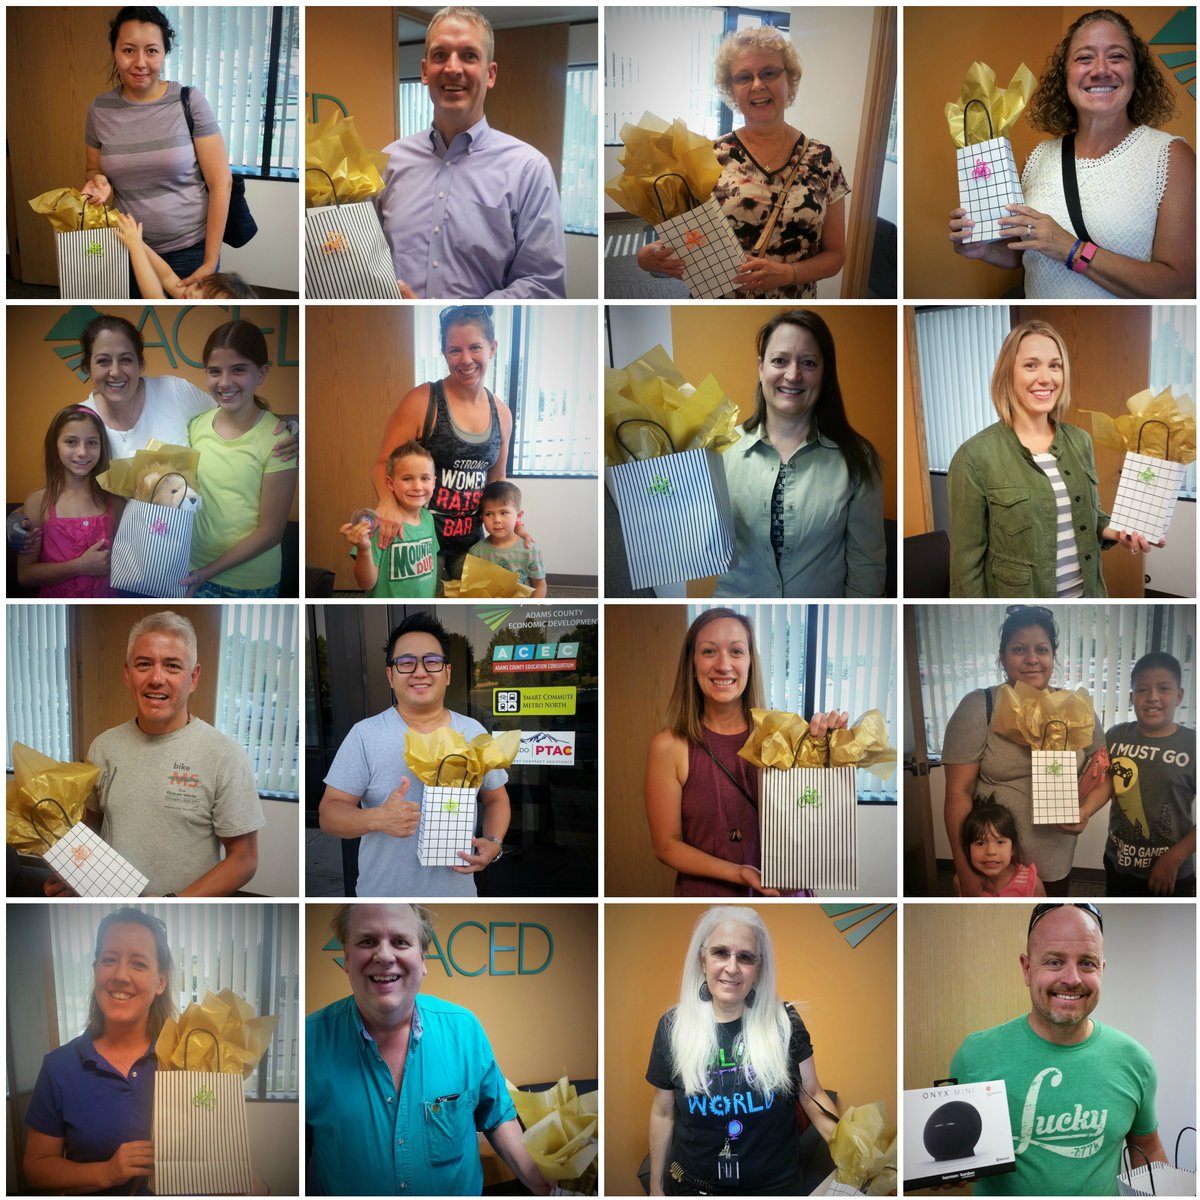 We had a LOT of prize winners after our #BikeToWorkDay party at @OrchardTC - there are some major perks to biking to work :)<br>http://pic.twitter.com/bg5UcJBdYJ